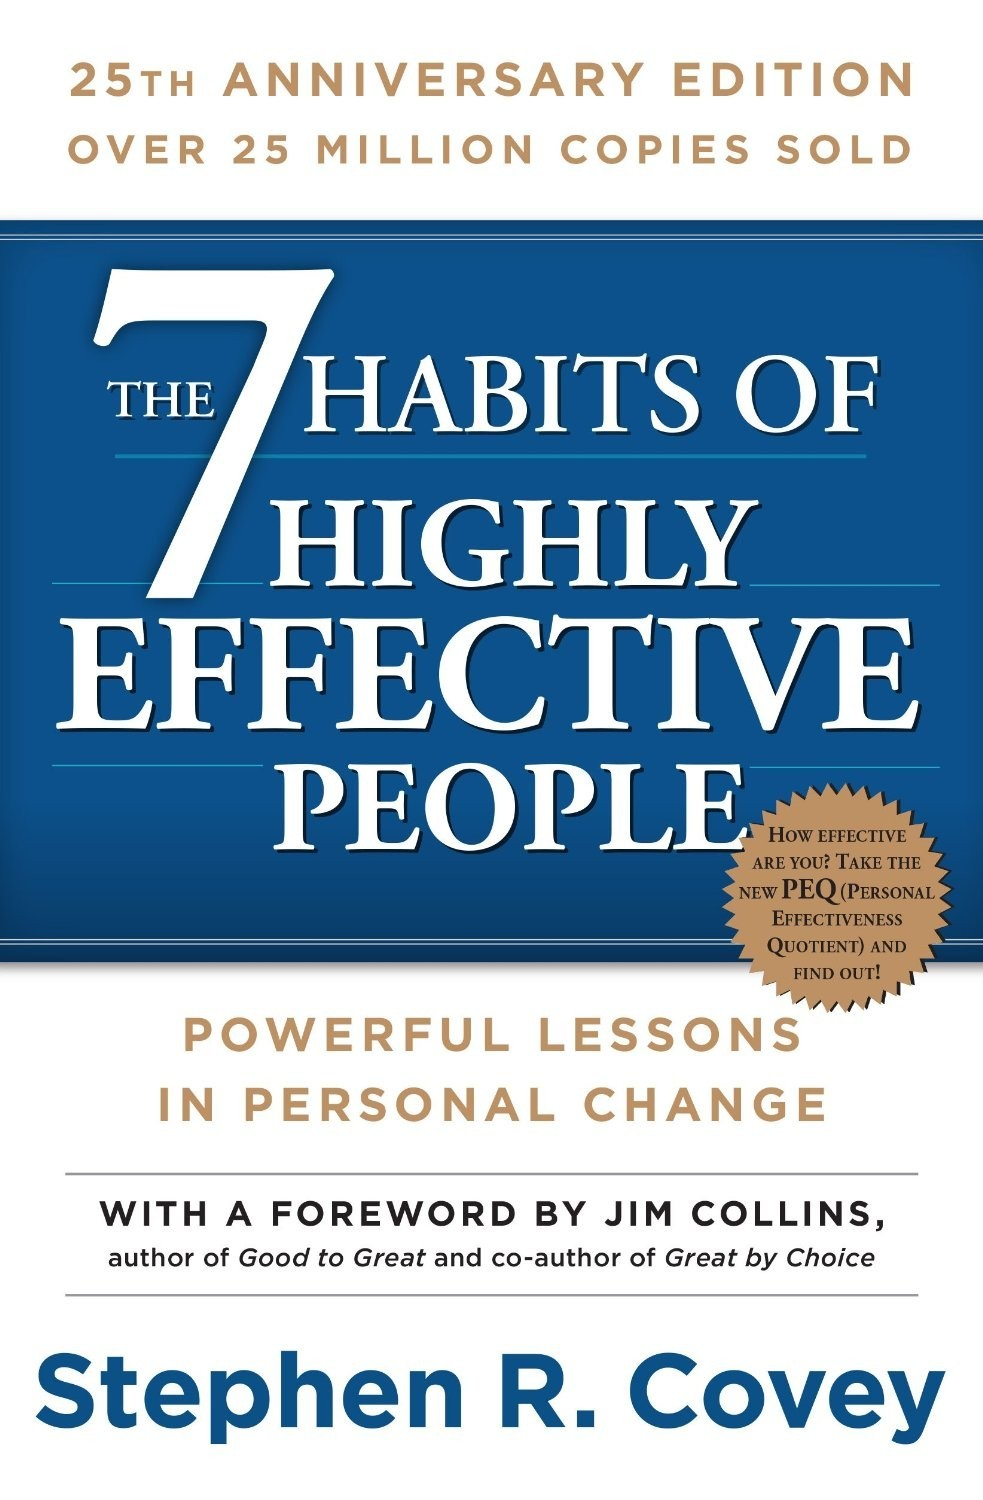 The 7 Habits Summary, #1 (Be Proactive)